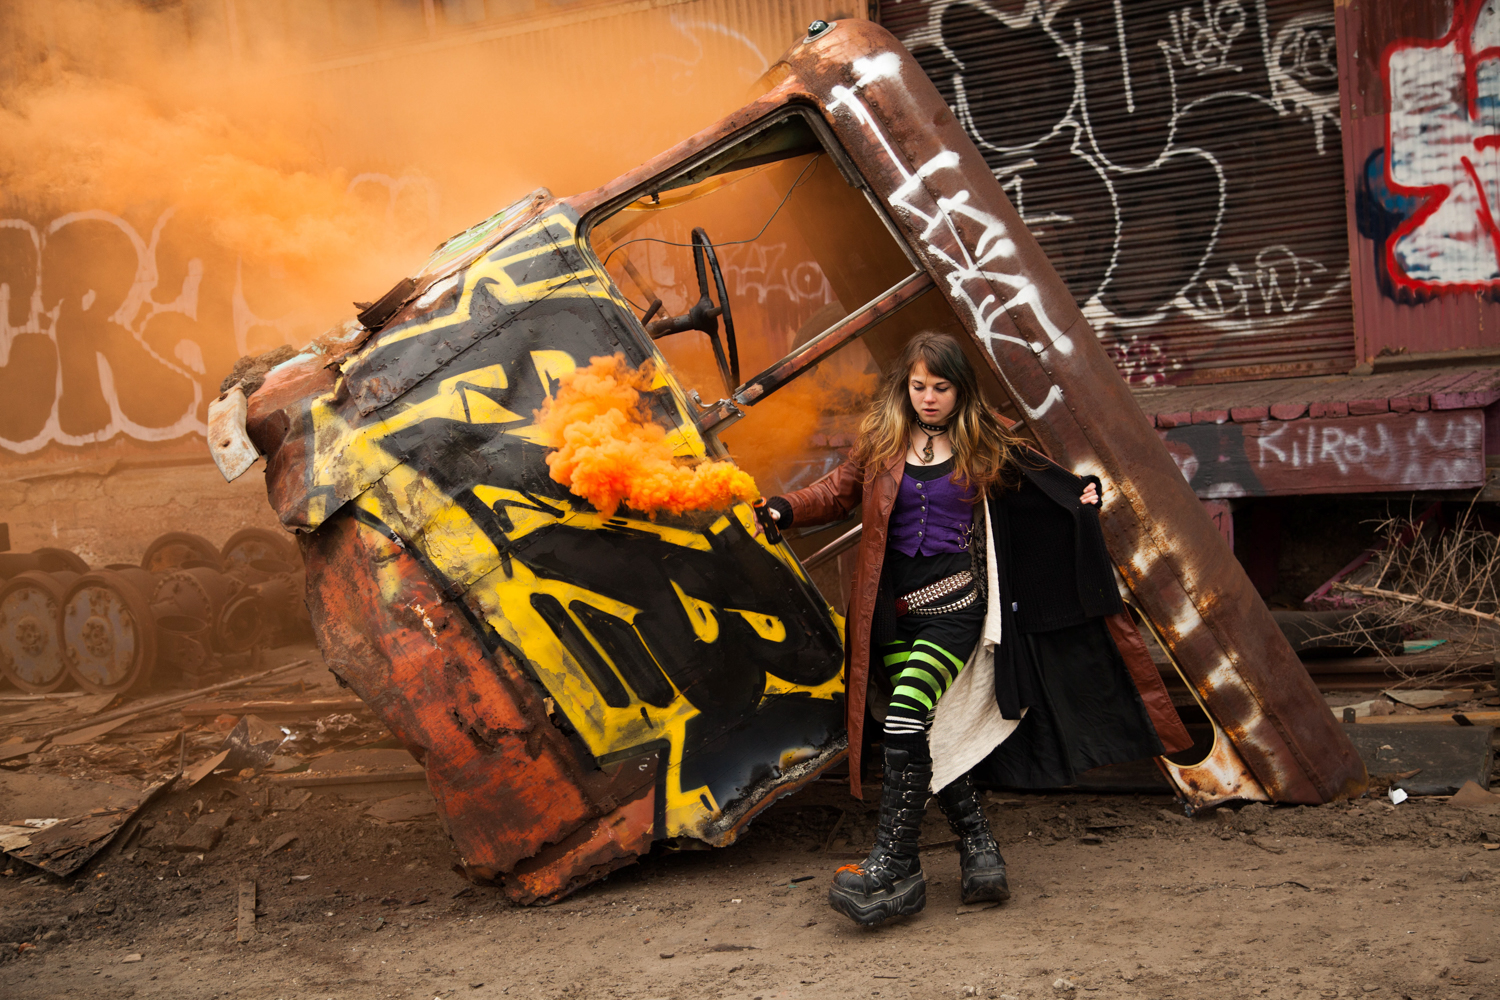 Steampunk alternative fashion, orange smoke bomb photography